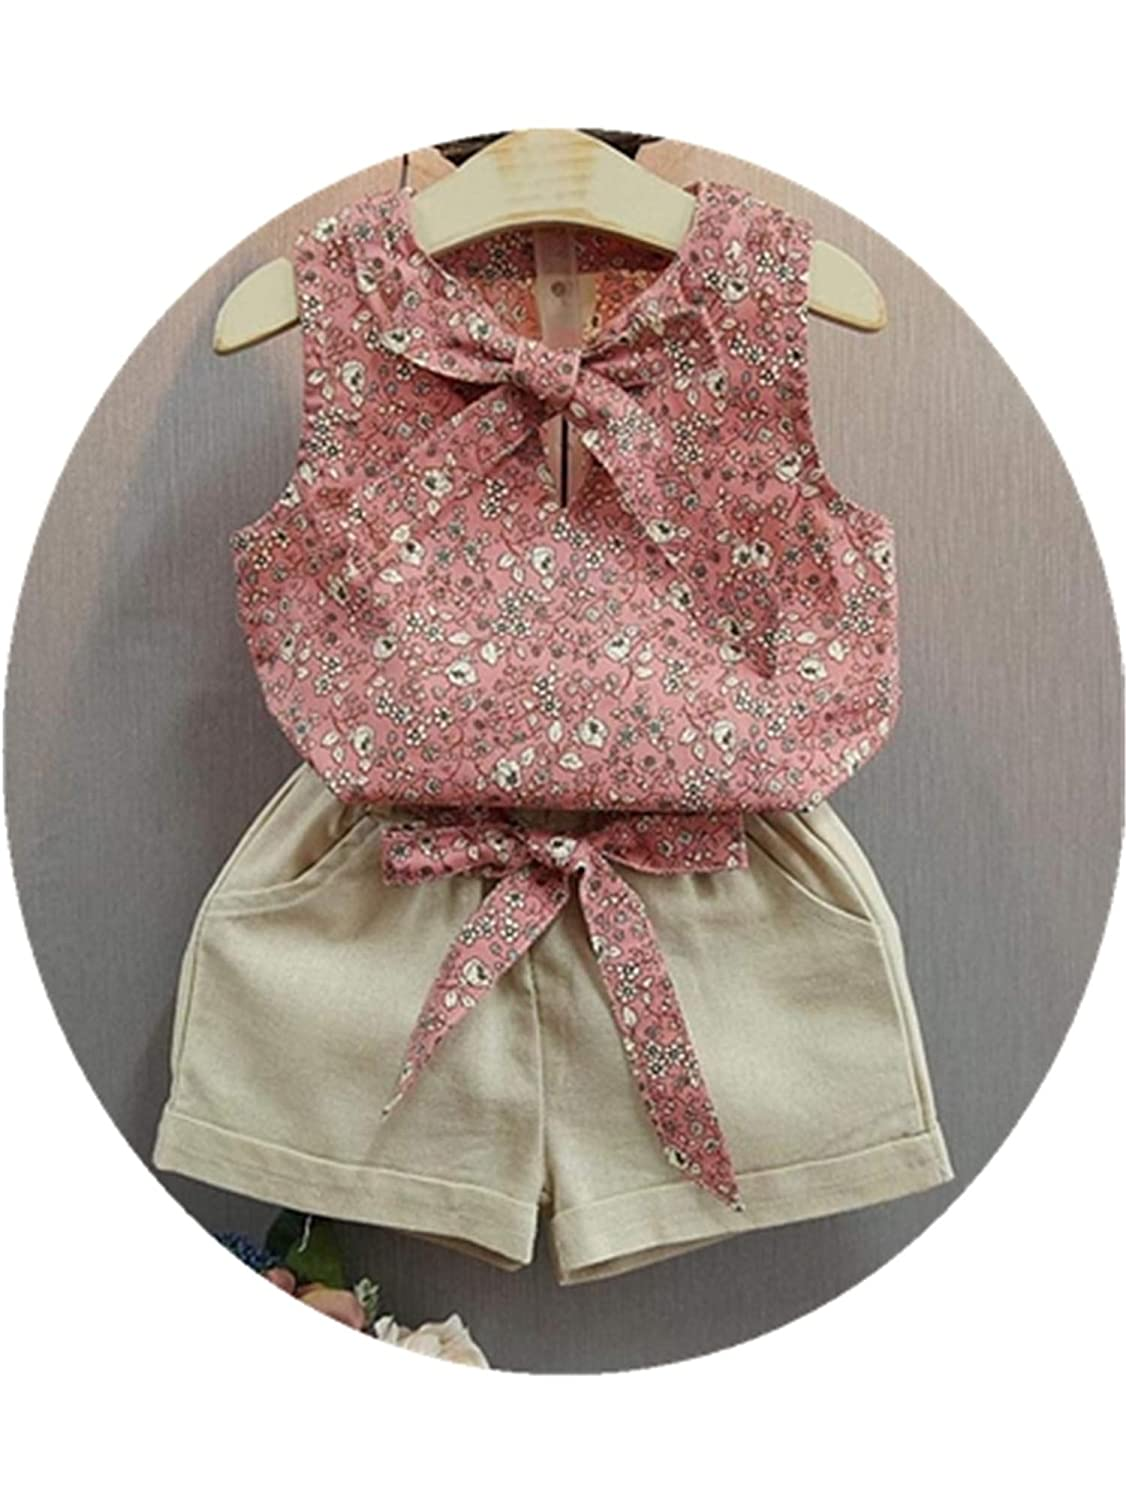 Girls Clothes Flower Sleeveless Tops Shorts Summer Style New Casual Children Clothing Set Kids Suits for 2 3 4 5 6 7 8 Year